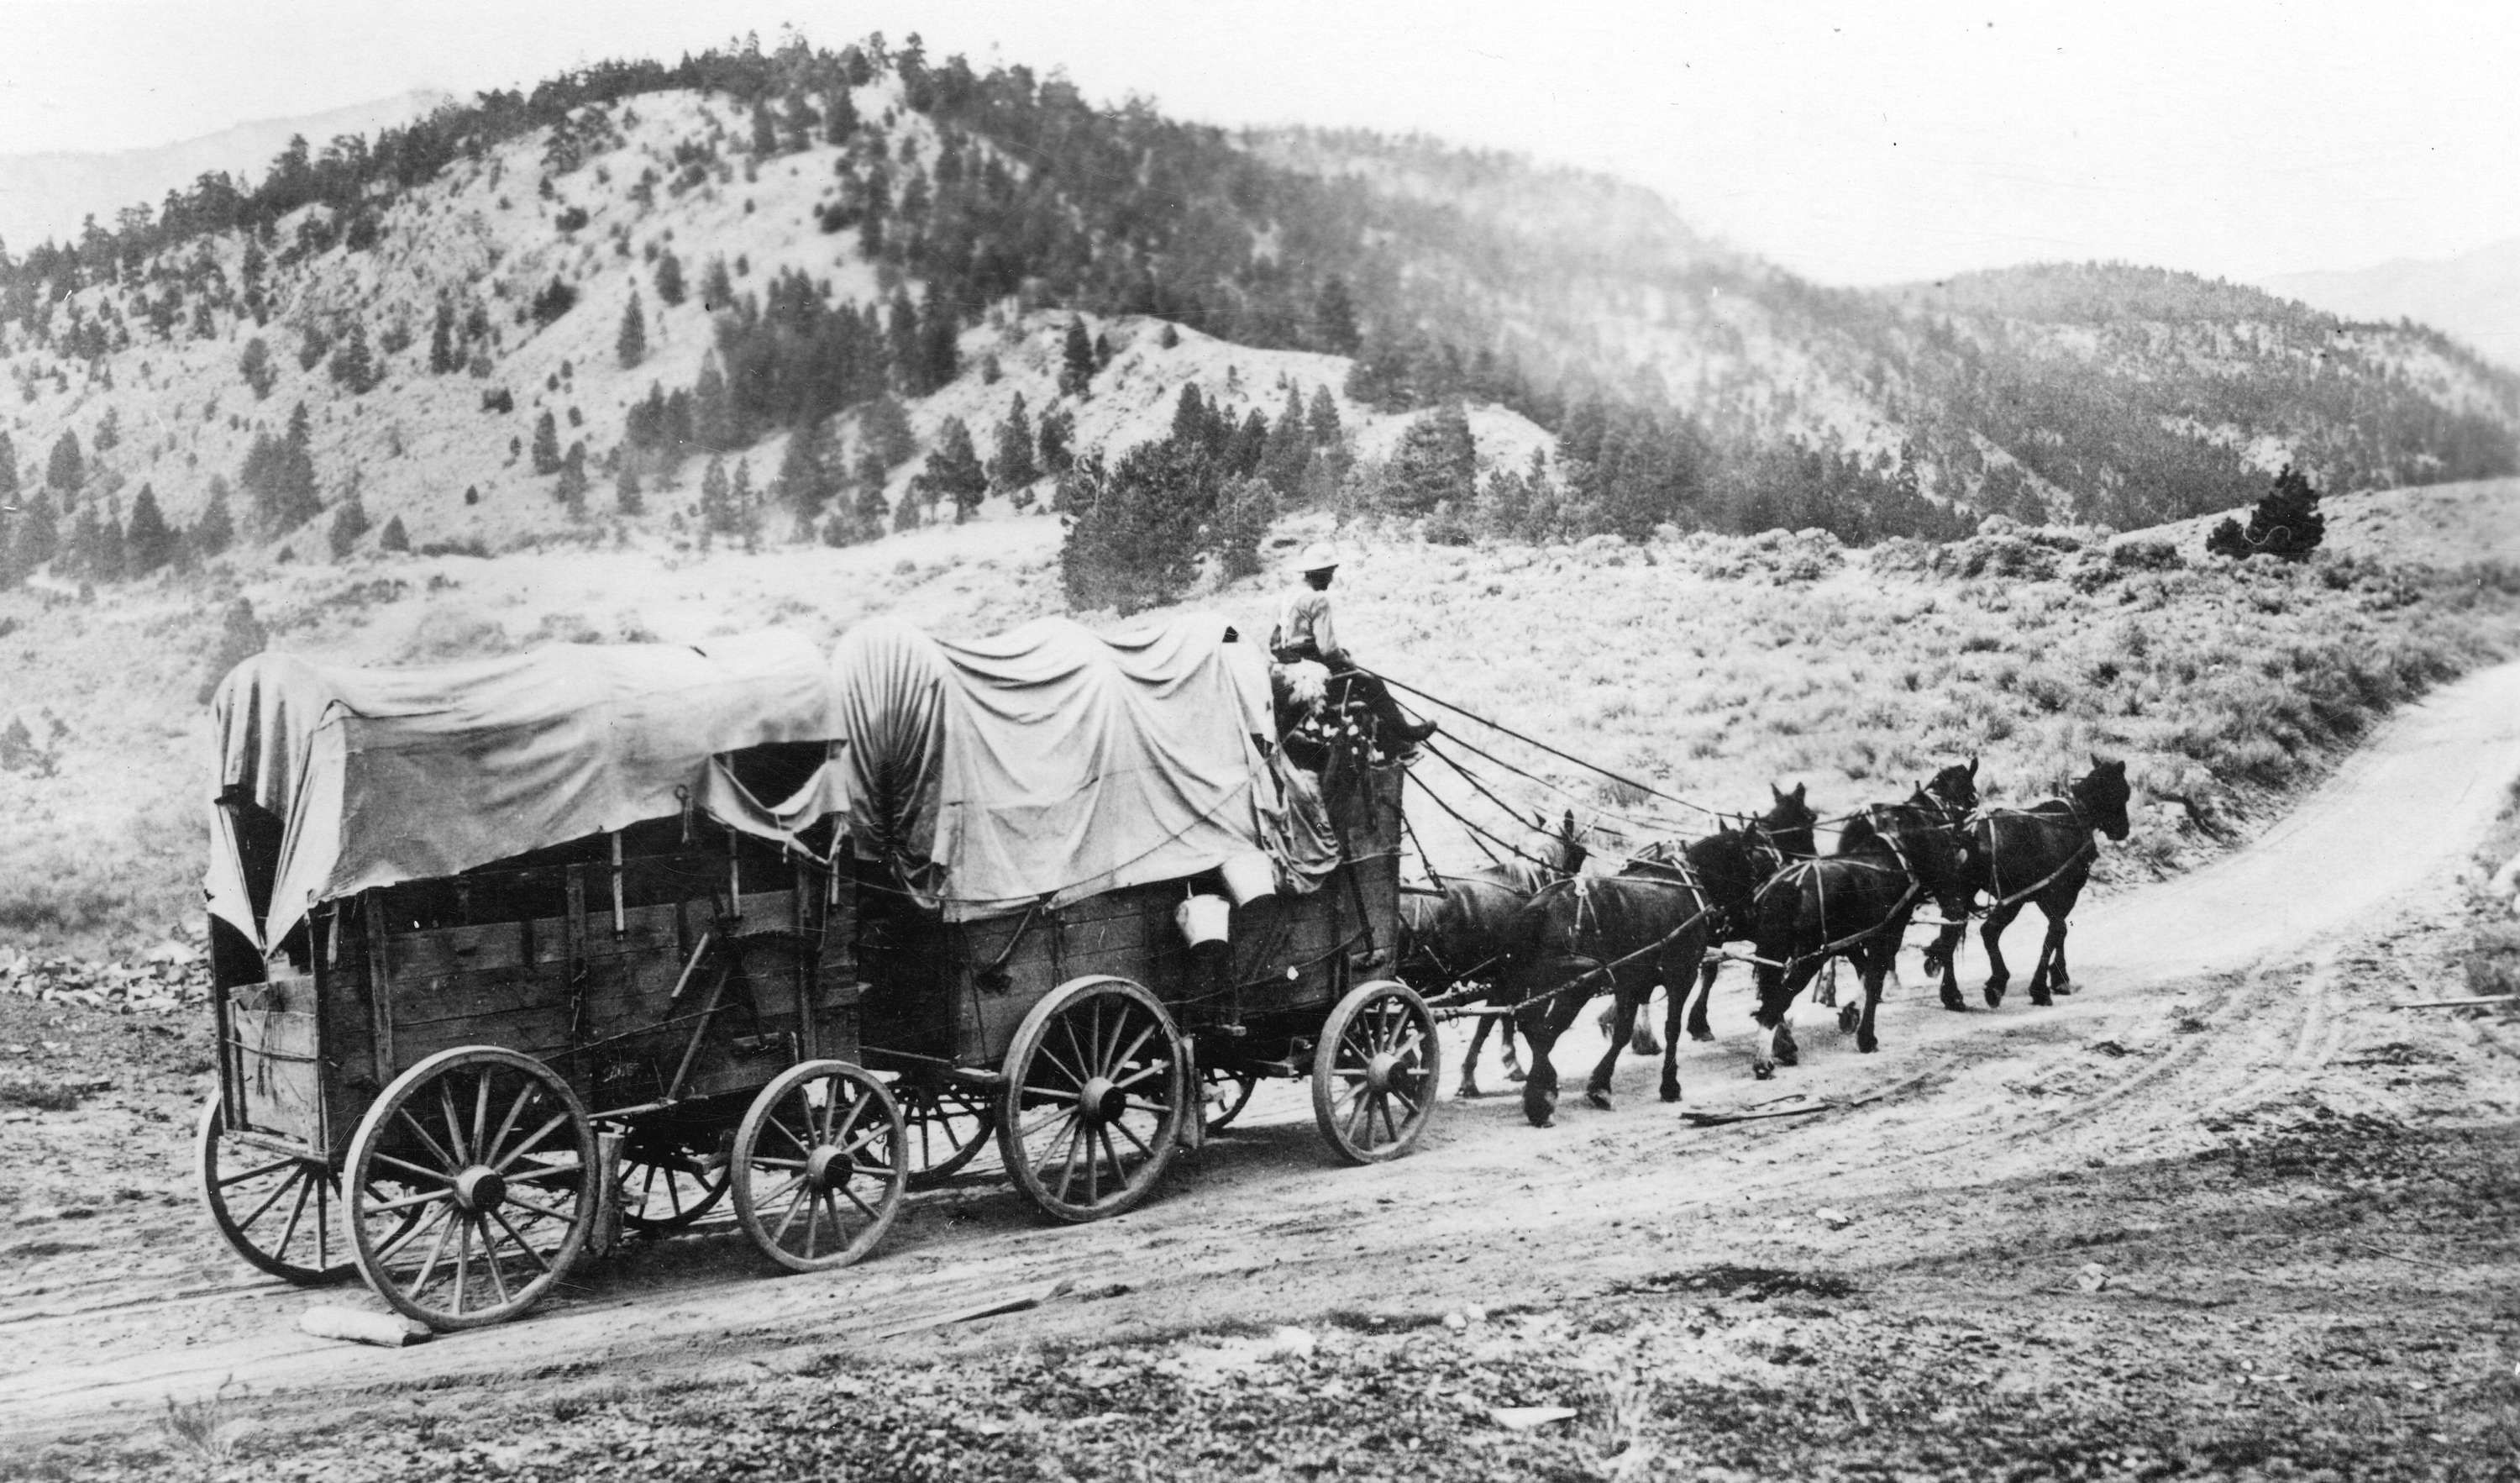 Pin by Angel Beard on Covered Wagons | Pinterest | Covered wagon and ...